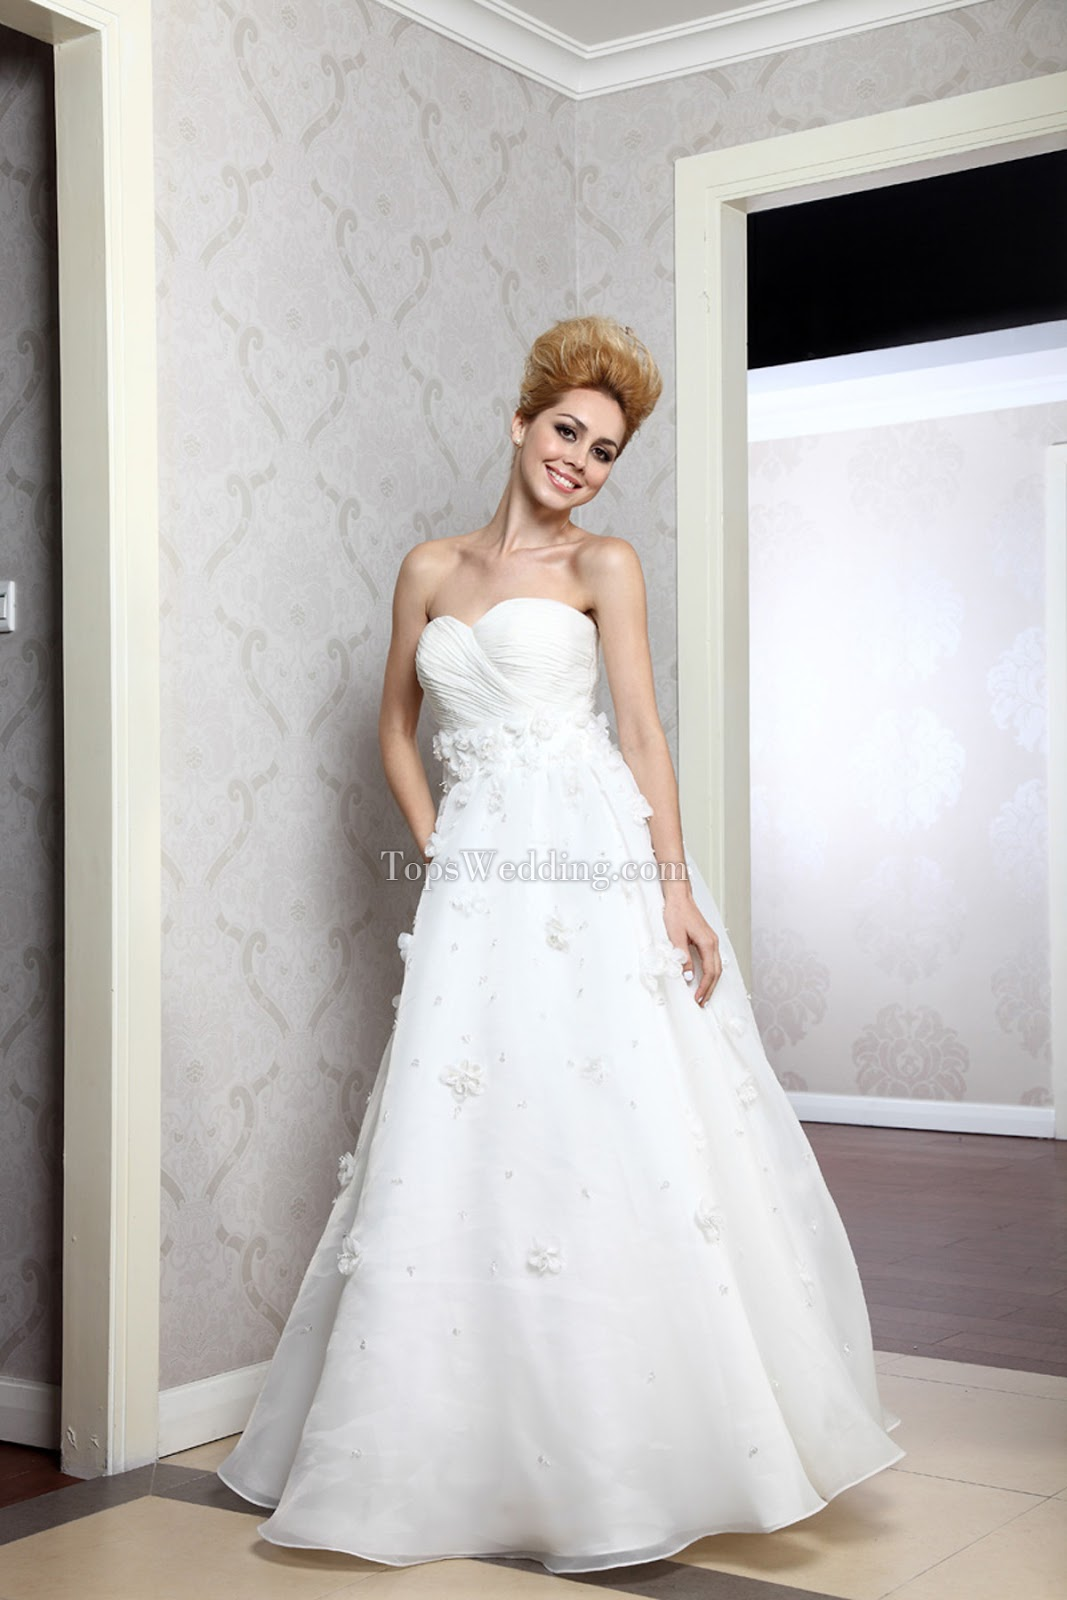 Empire waist wedding dresses, topwedding.com